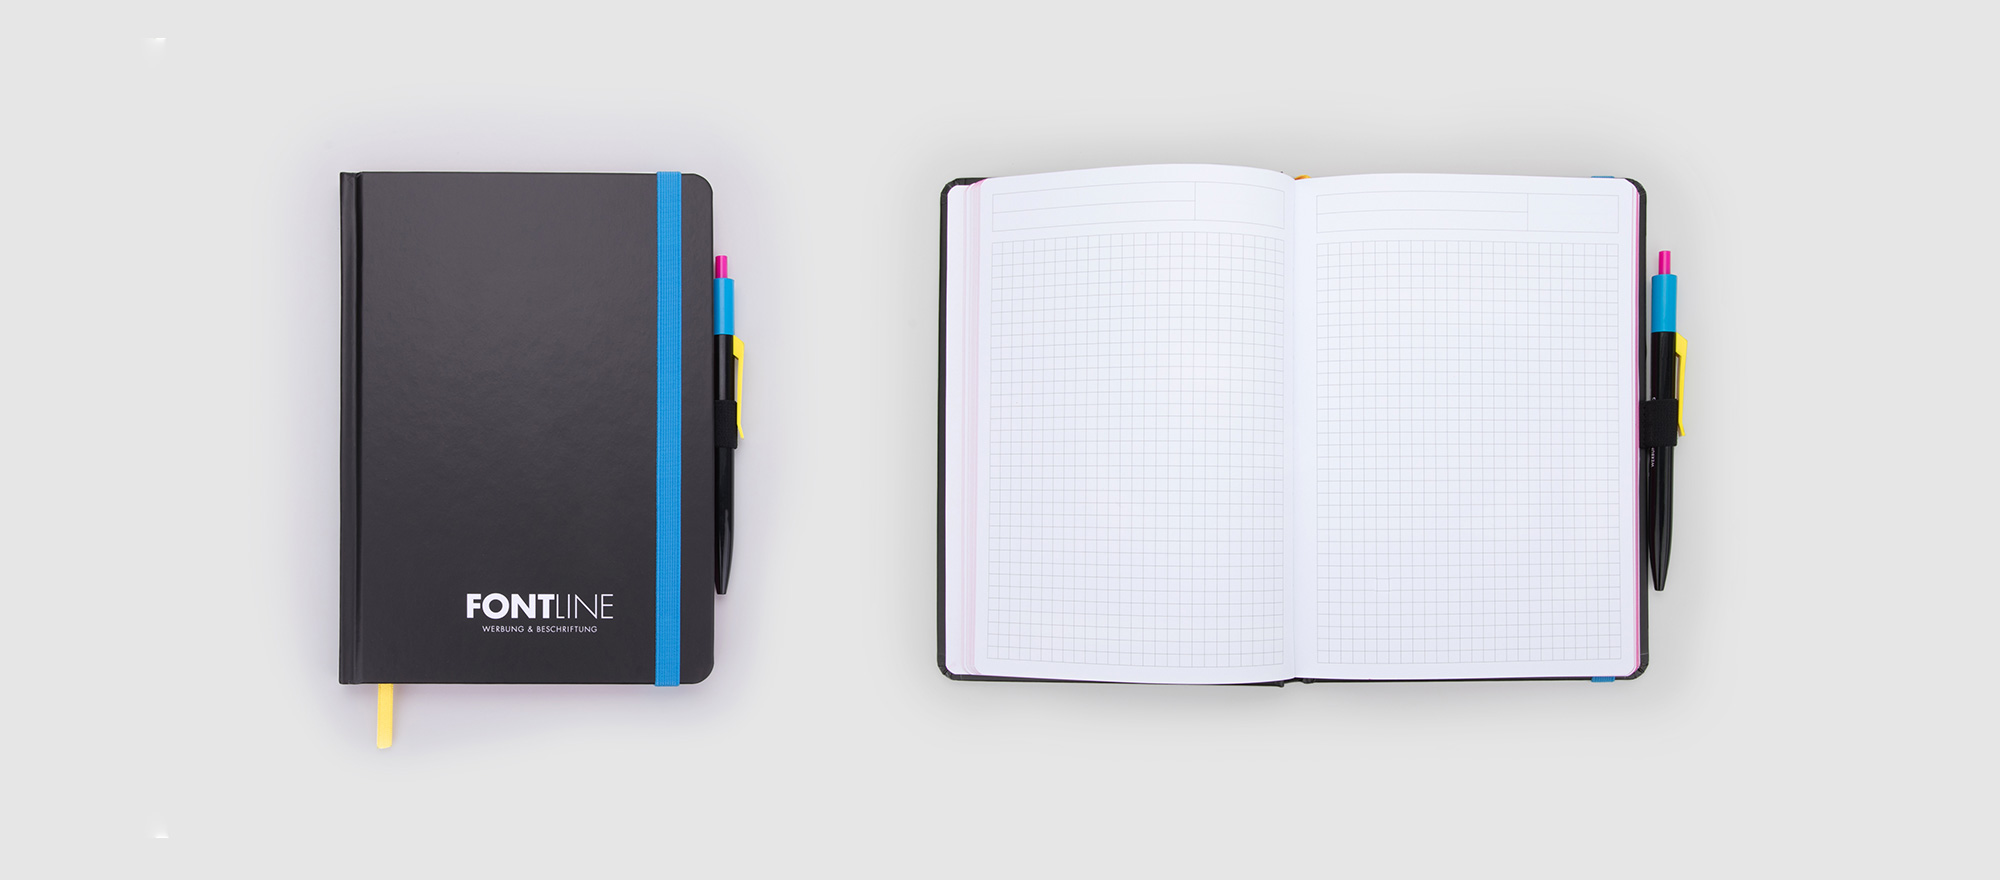 colomee-case-notizbuch-fontline